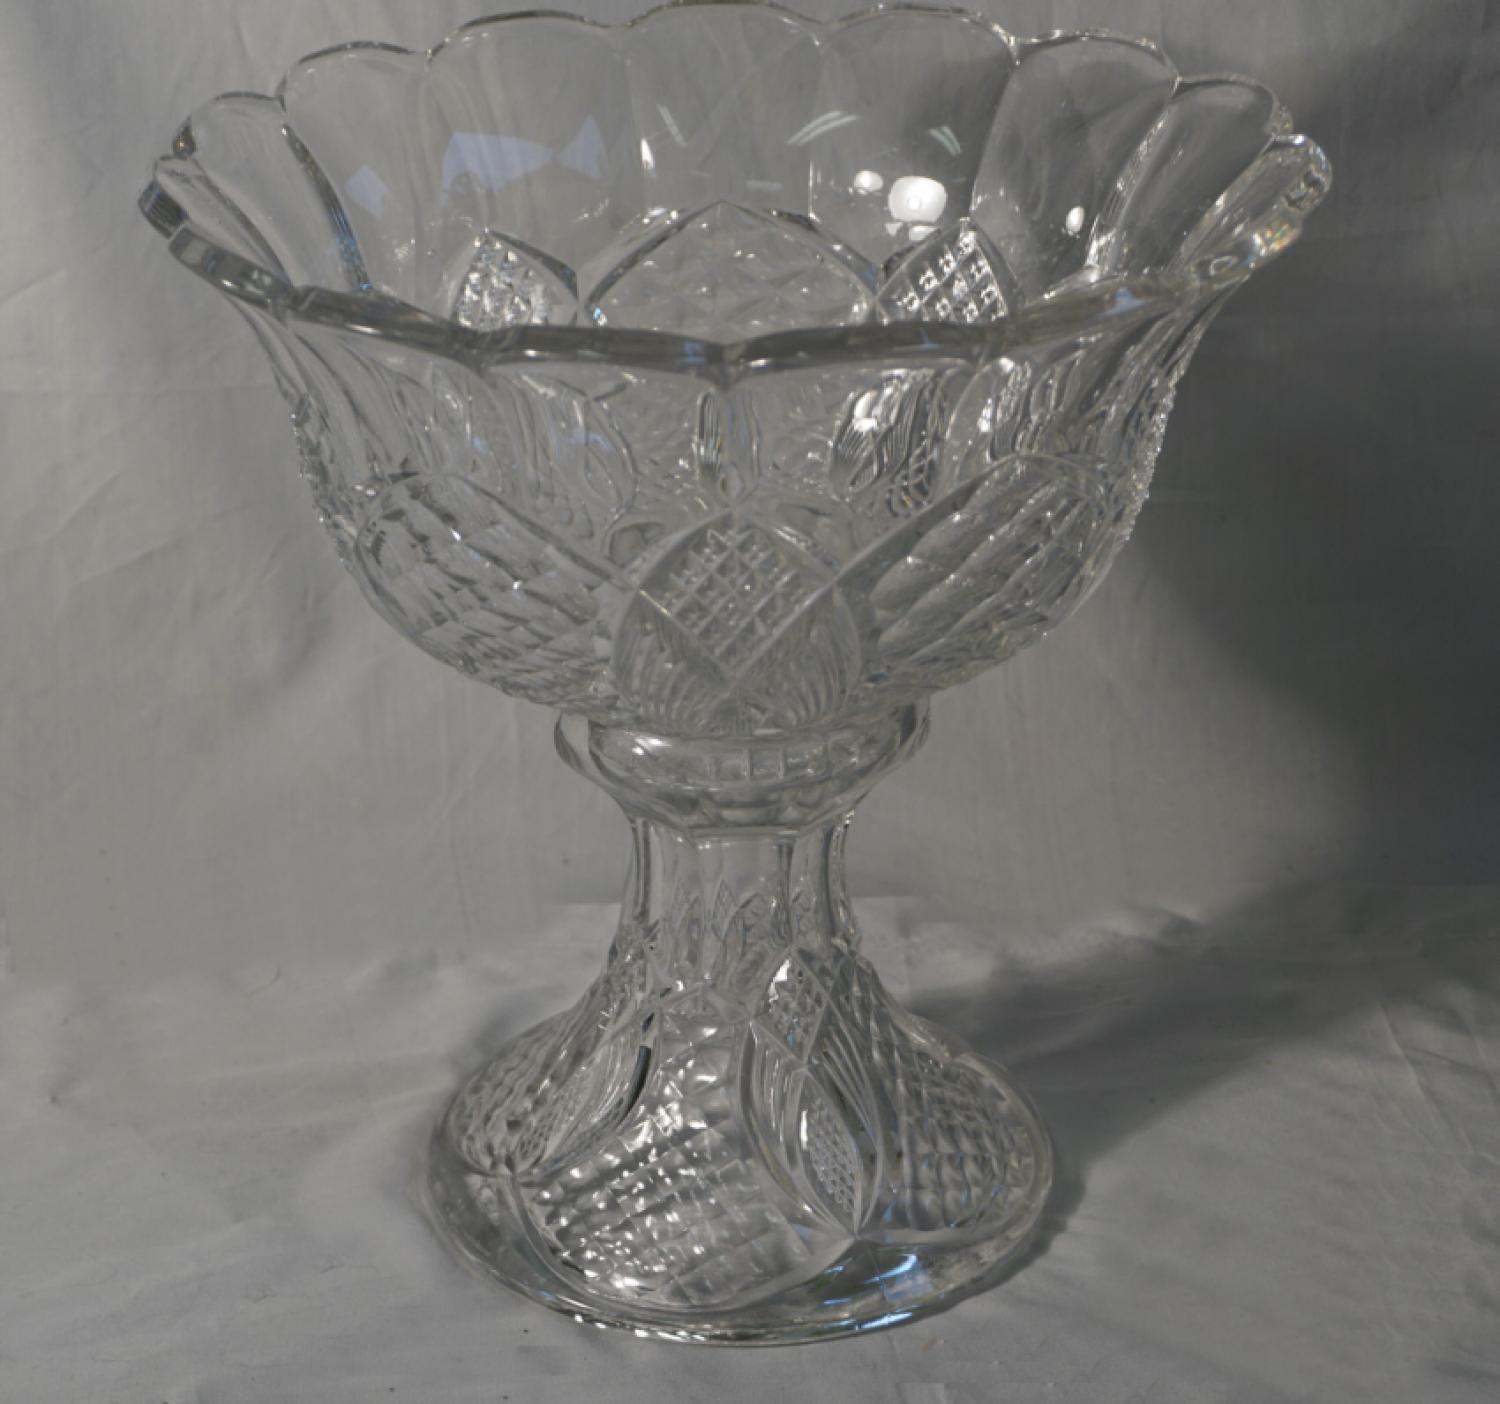 Antique American pattern glass compote c1880